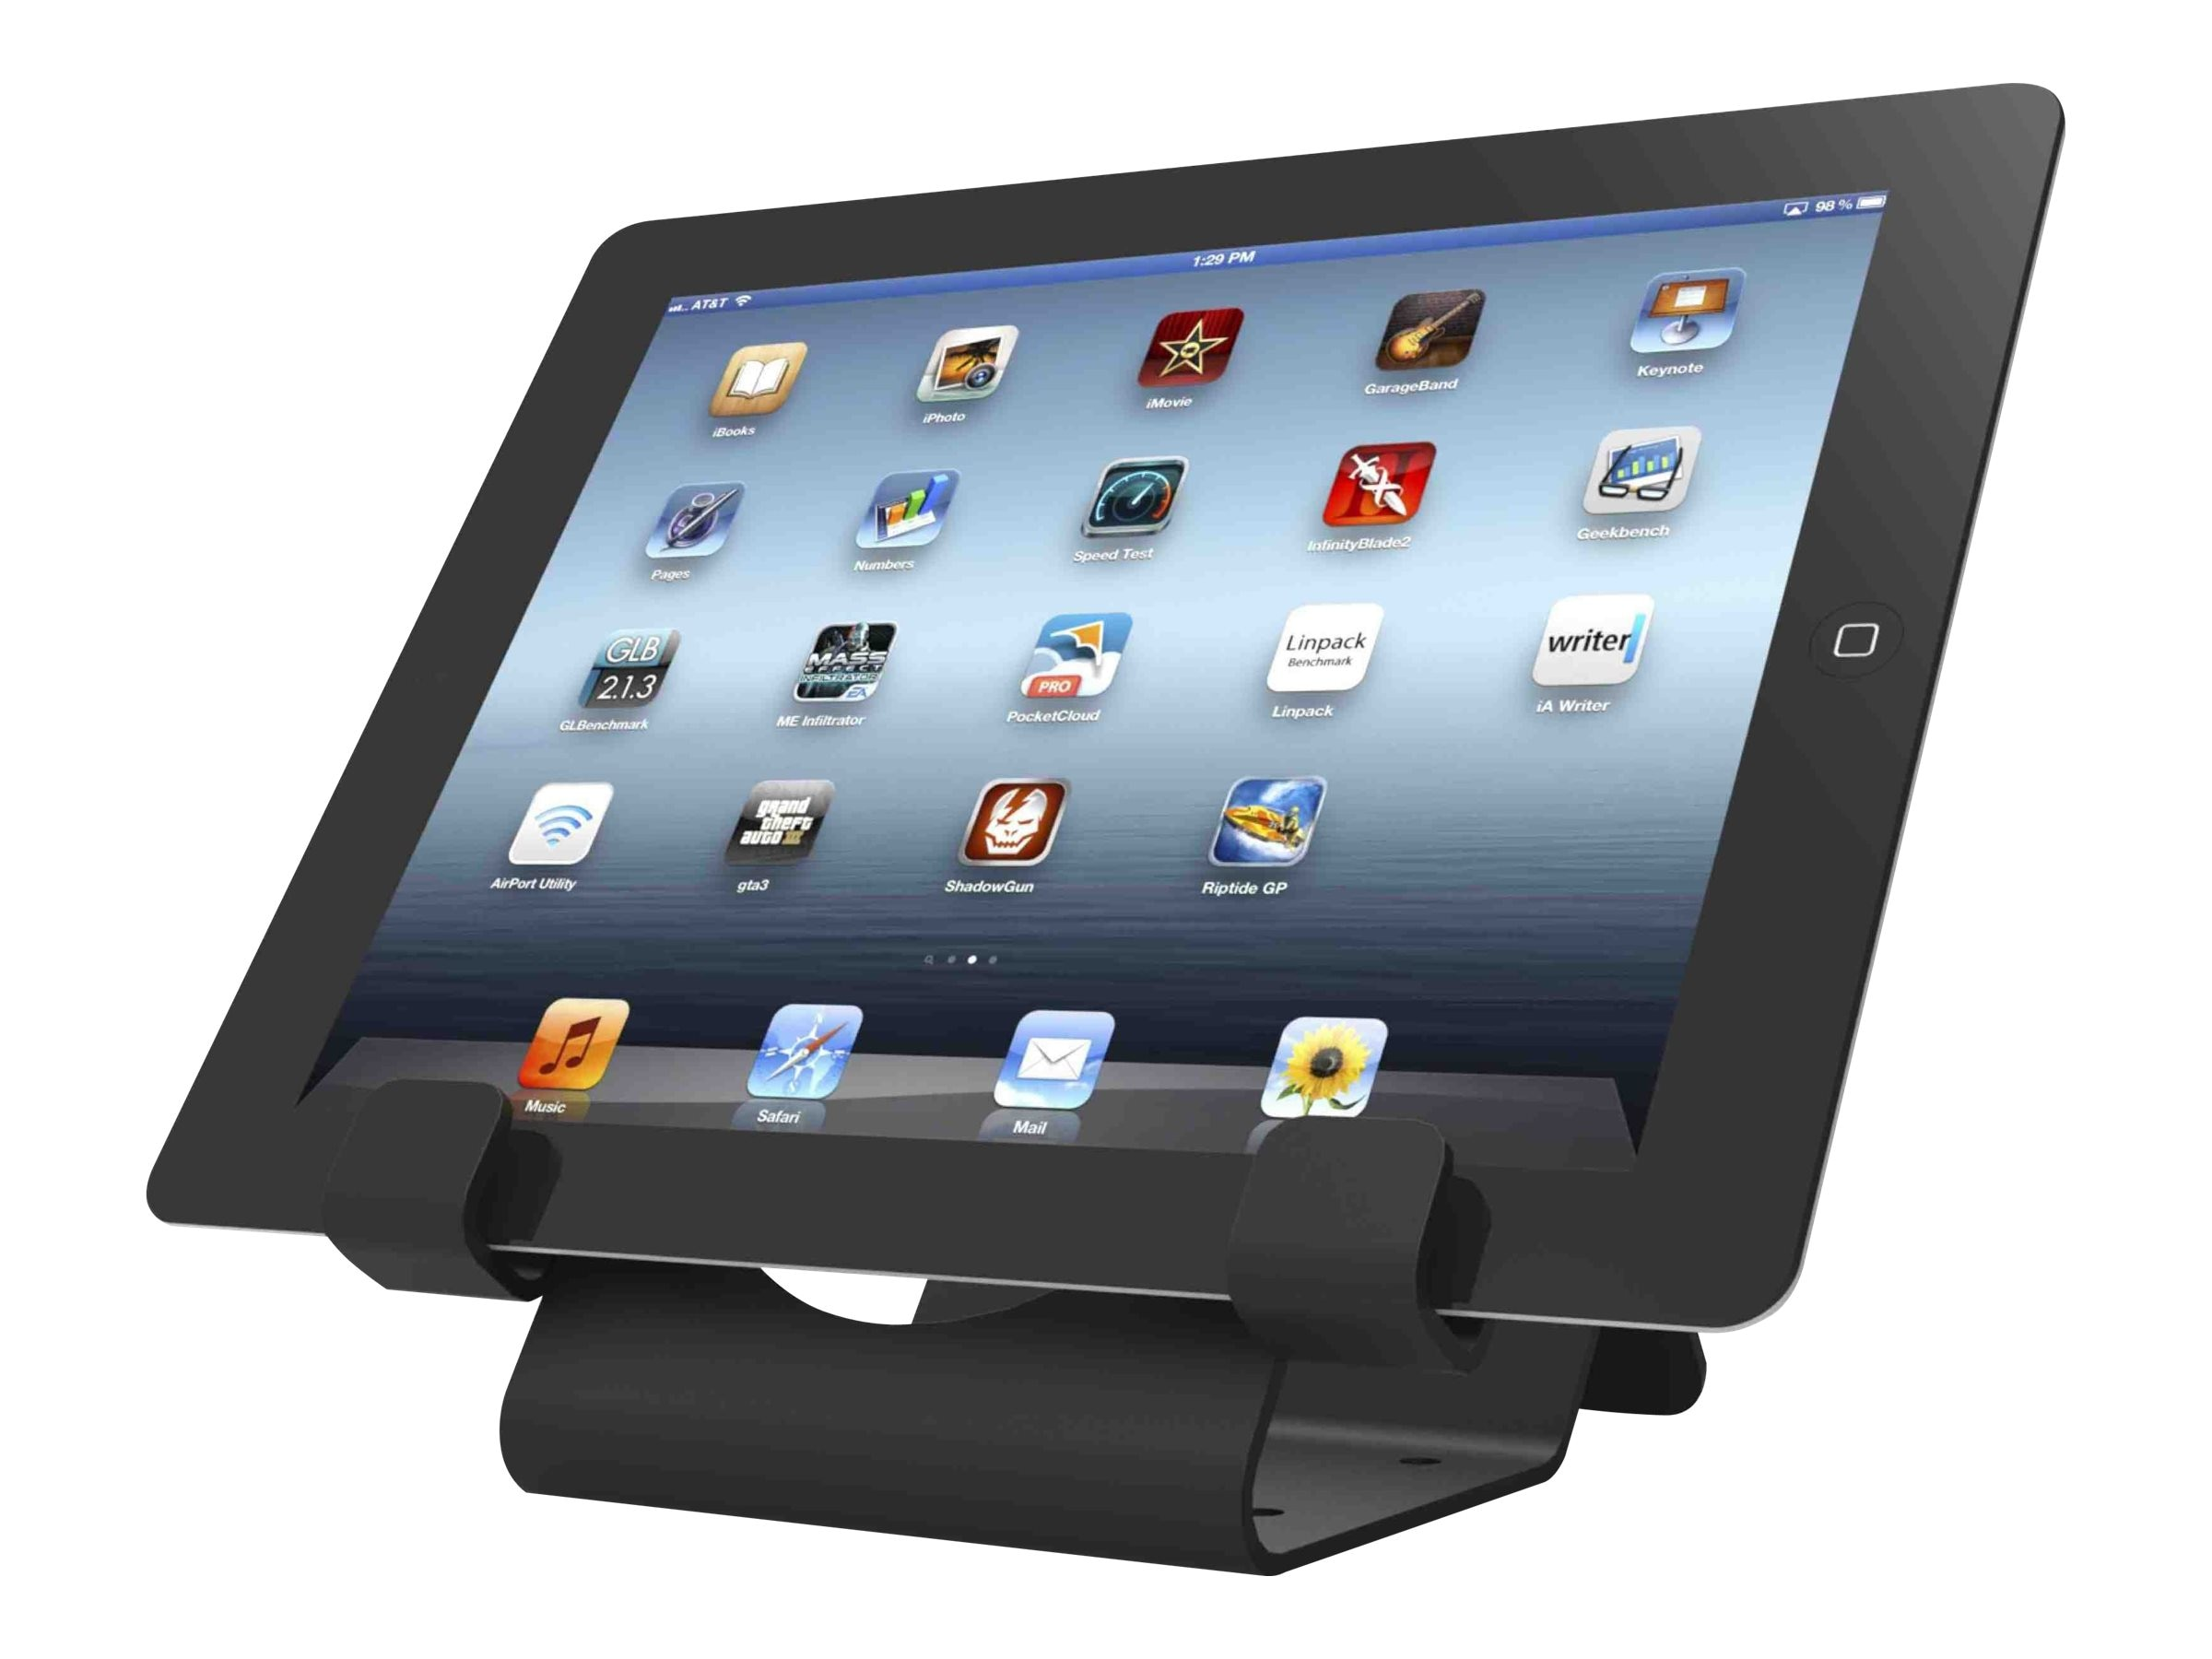 Compulocks Universal iPad and Tablet Security Holder, Black